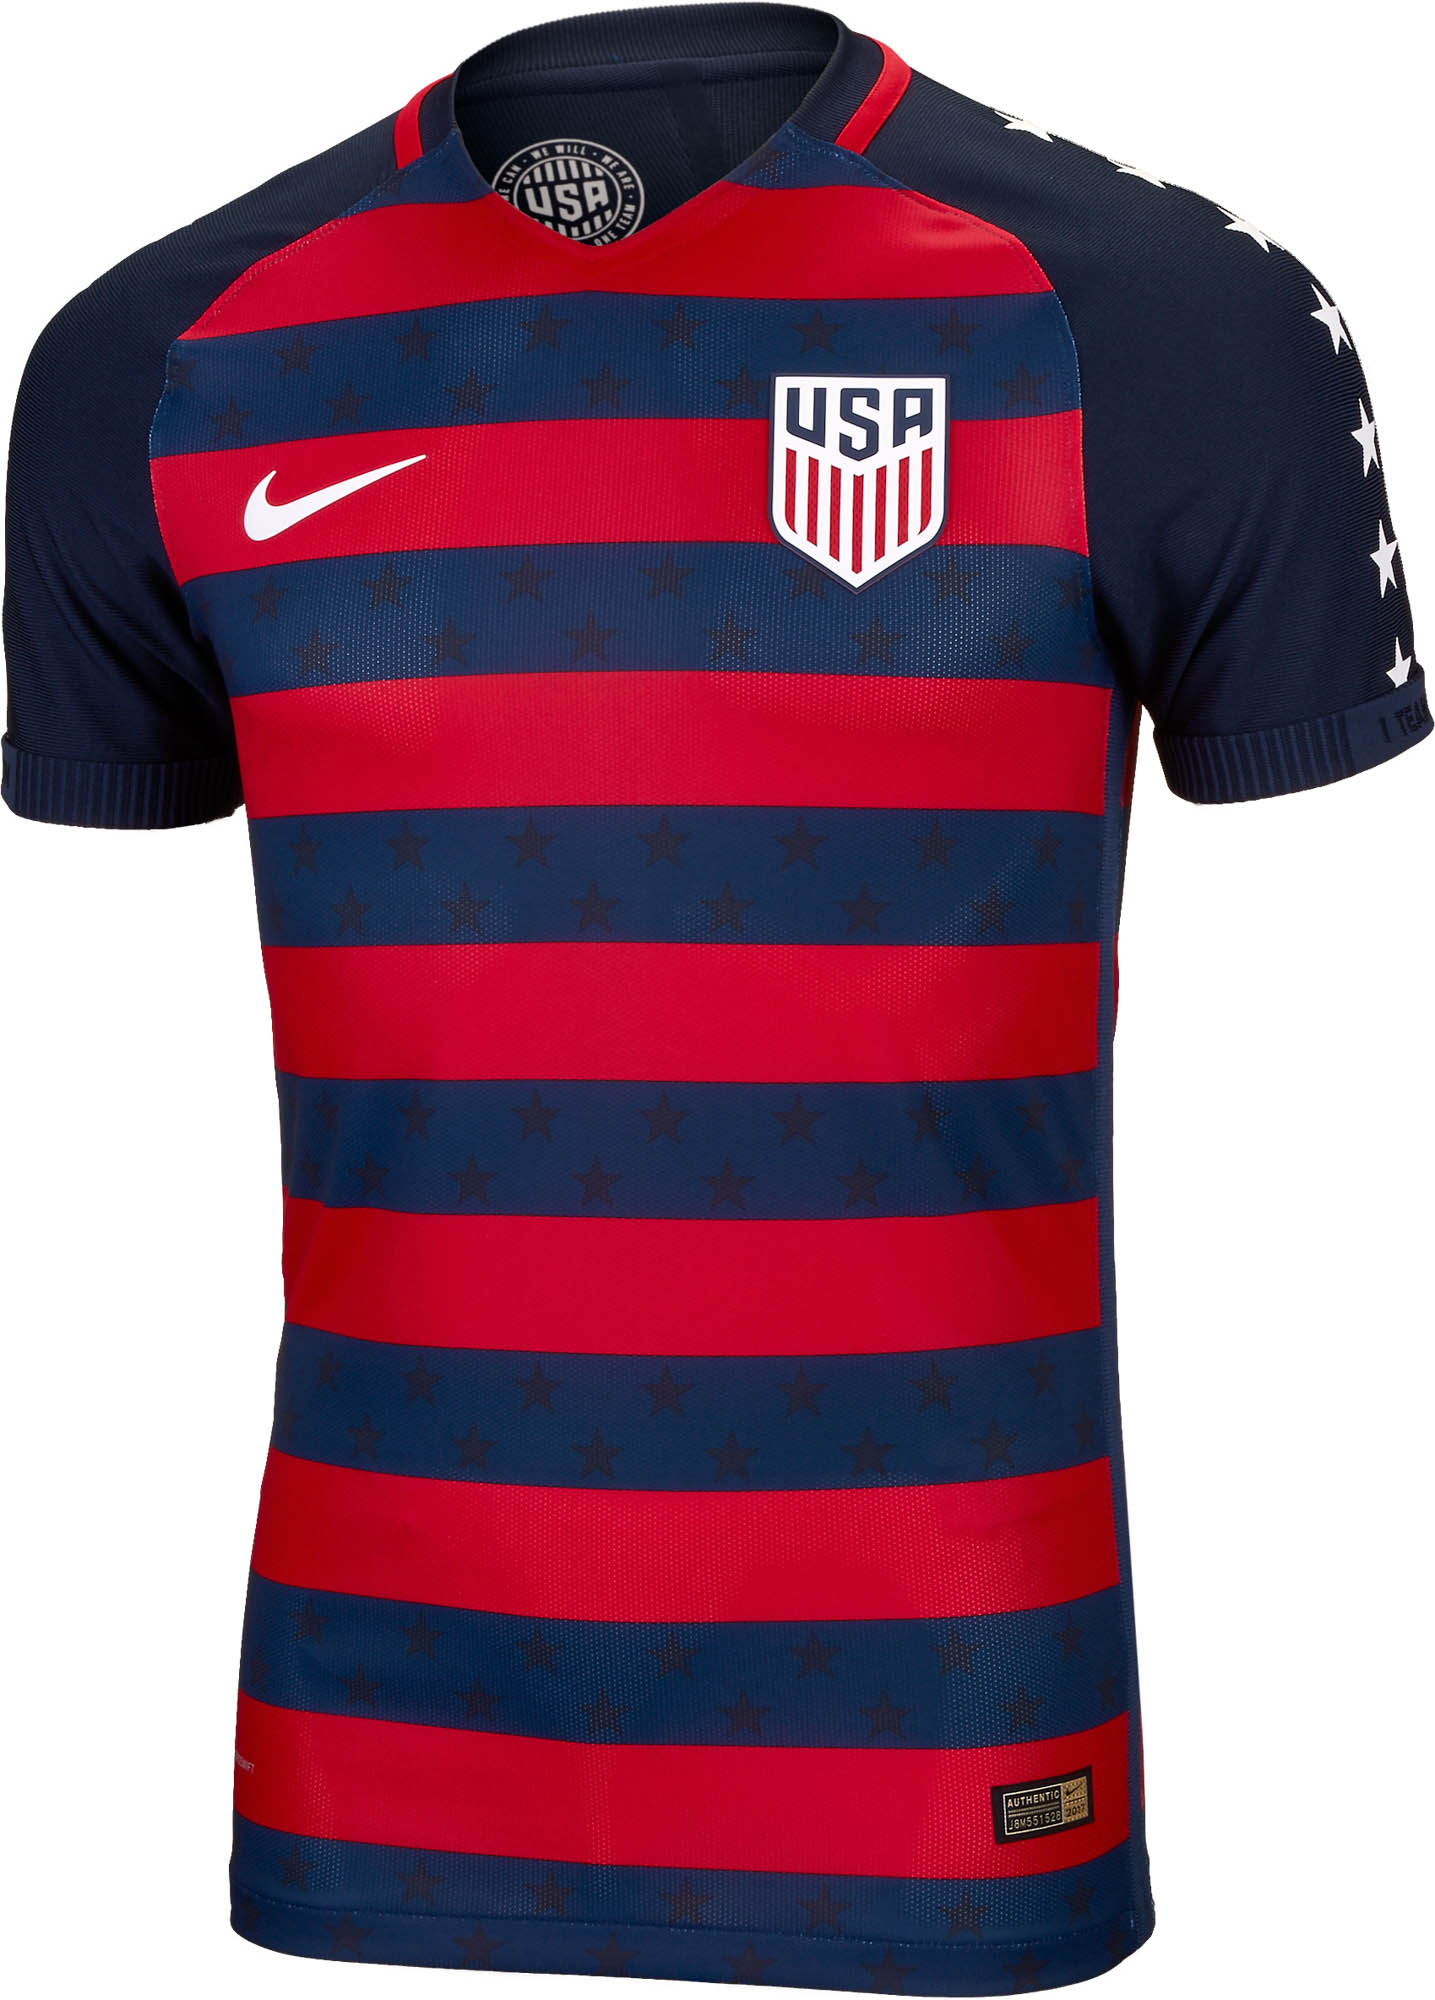 d96fc0764f7 Nike USA Gold Cup Match Jersey 2017